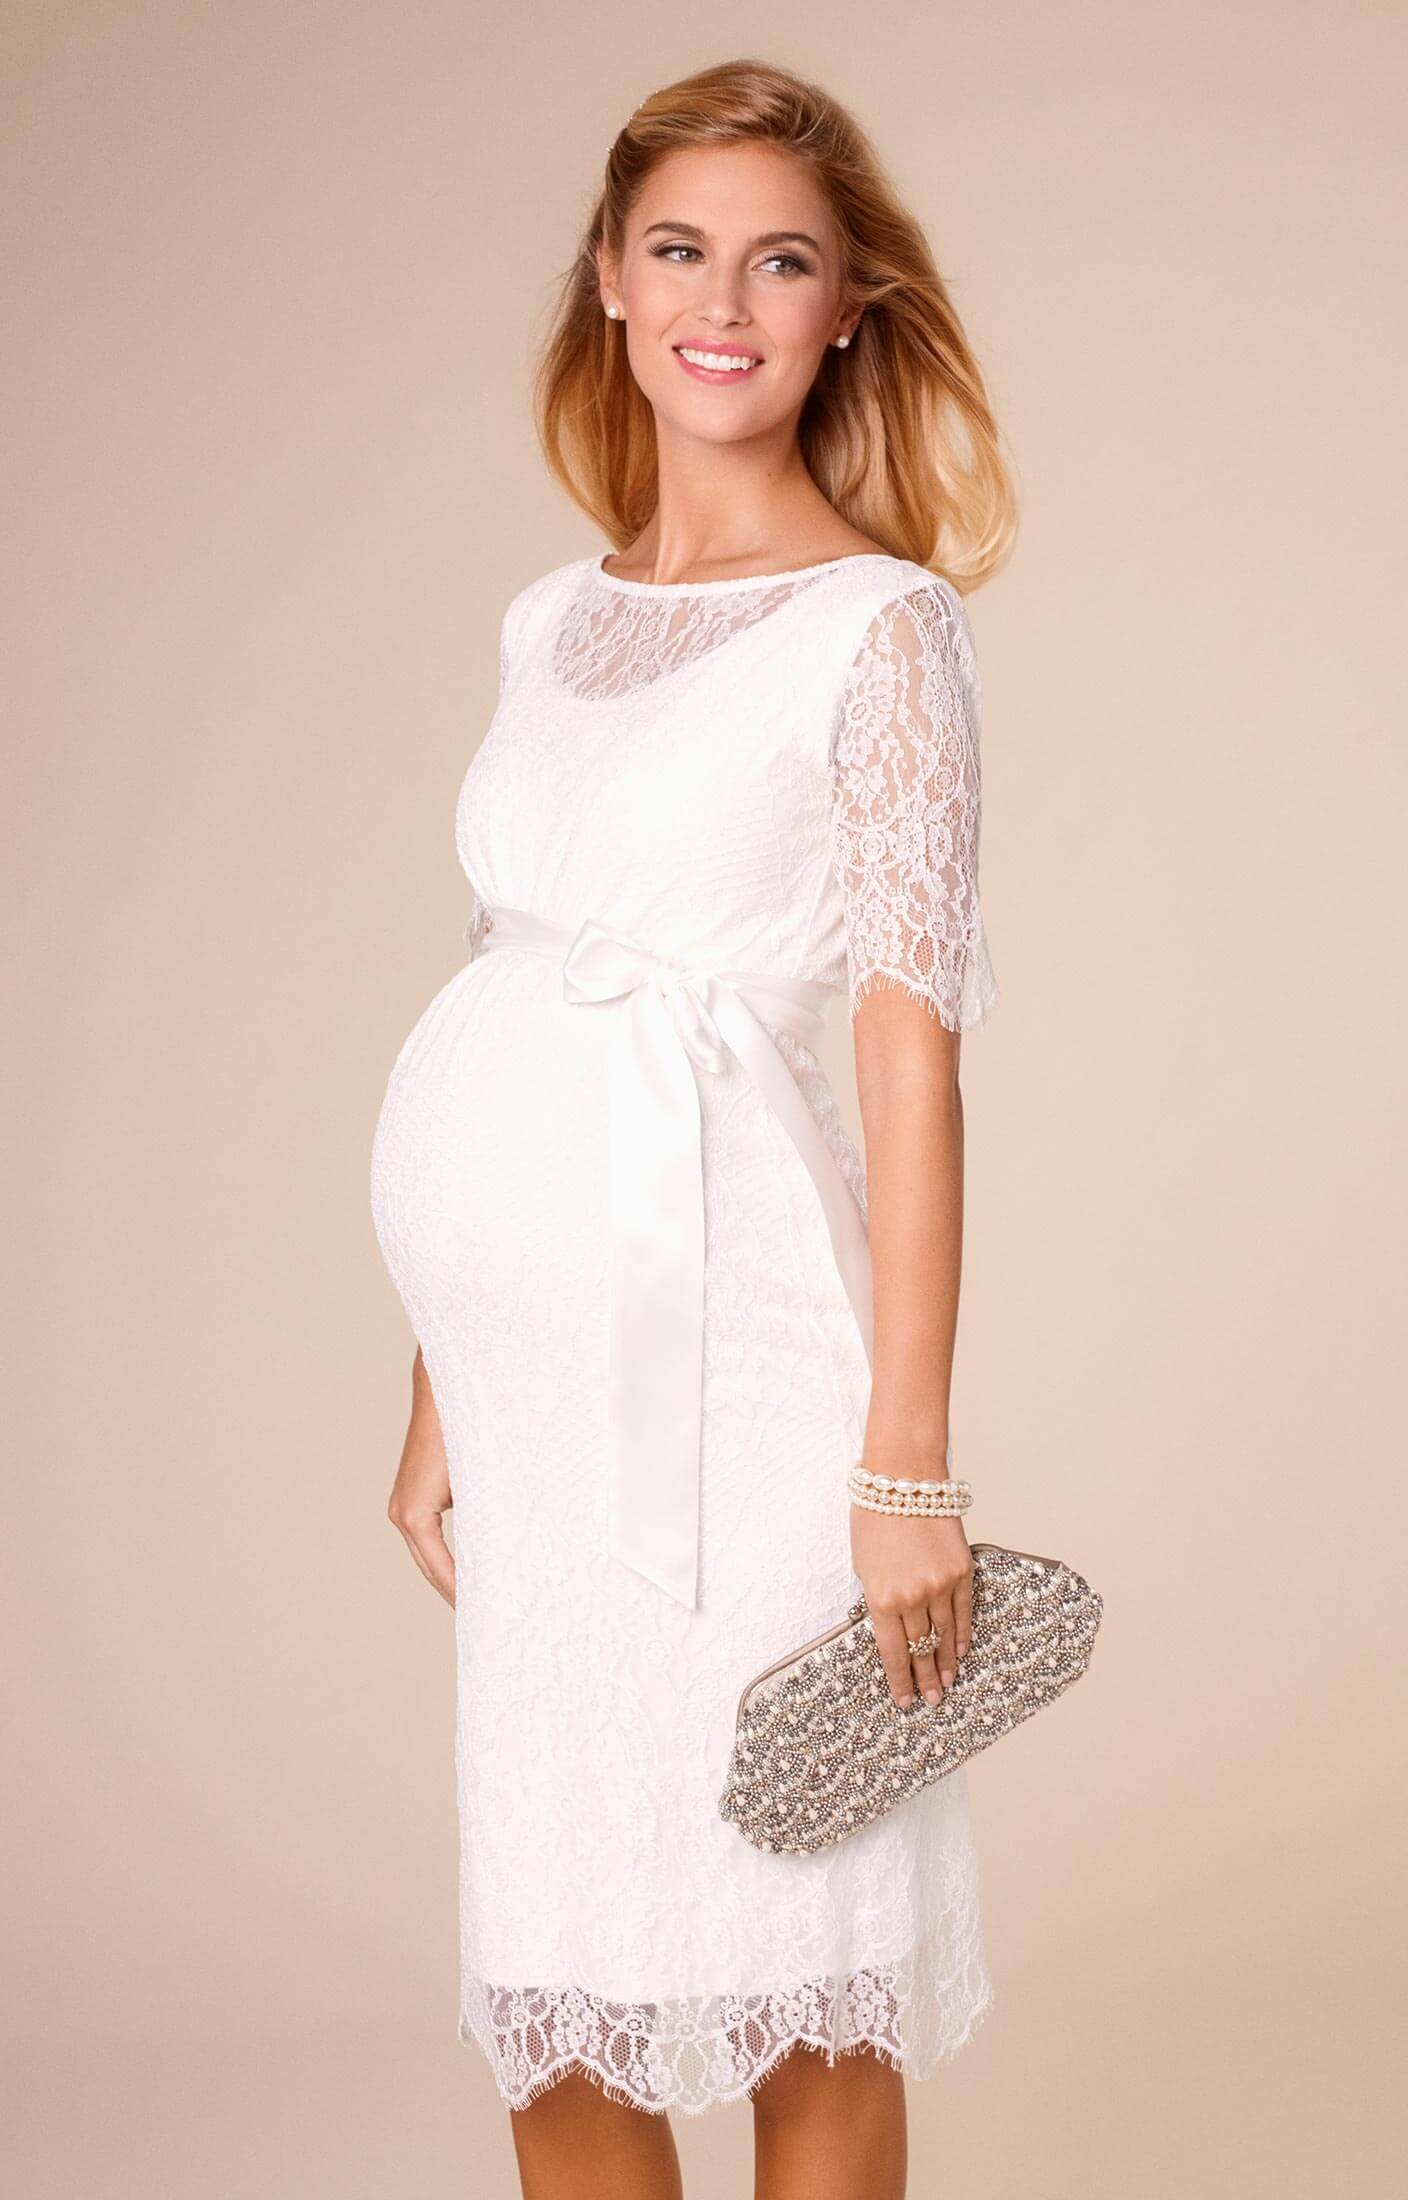 Starla maternity wedding dress short ivory maternity for Pregnancy dress for wedding